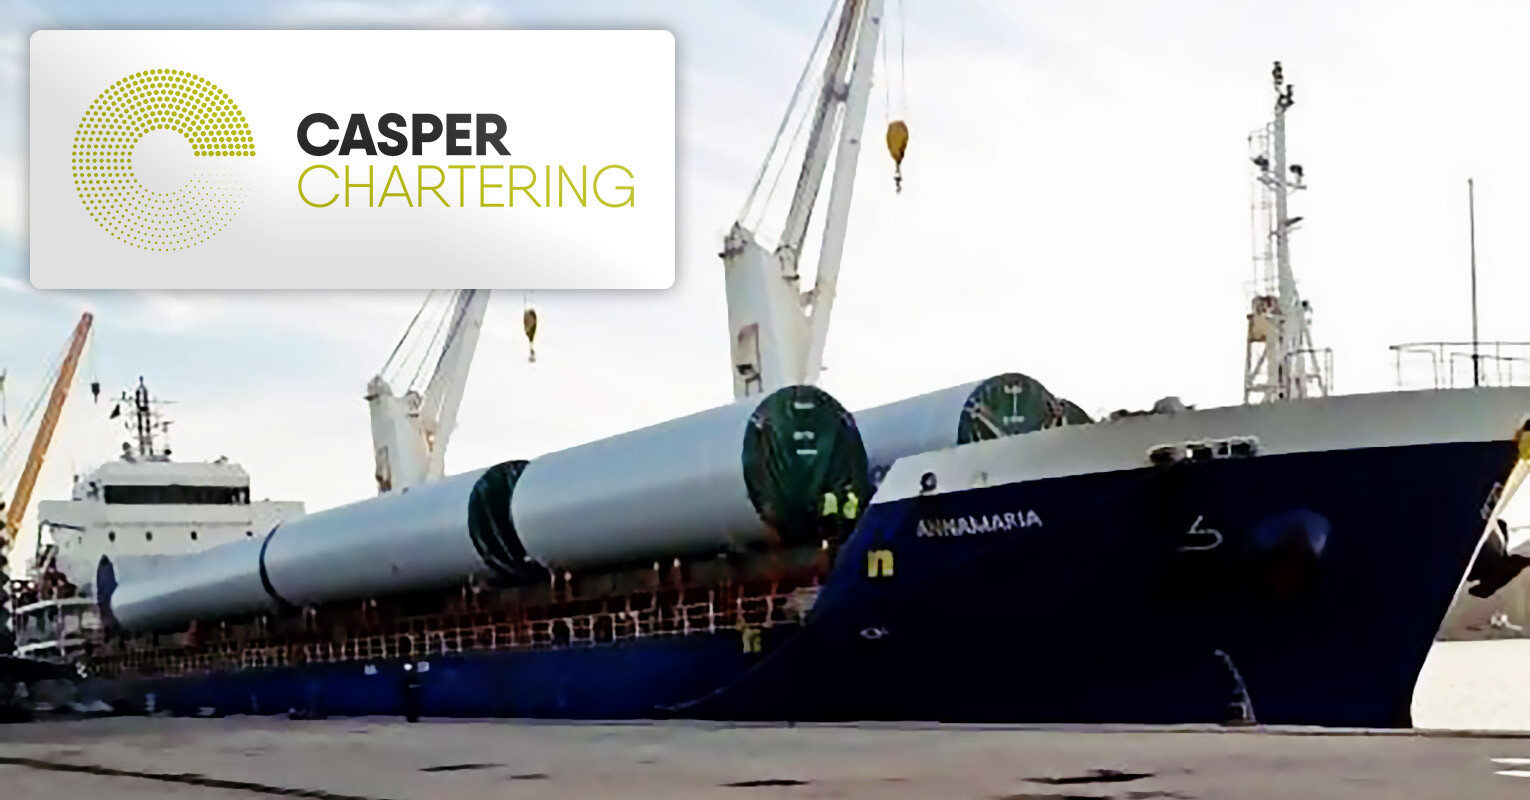 Casper Chartering's Latest Fixture of Windmill Equipment